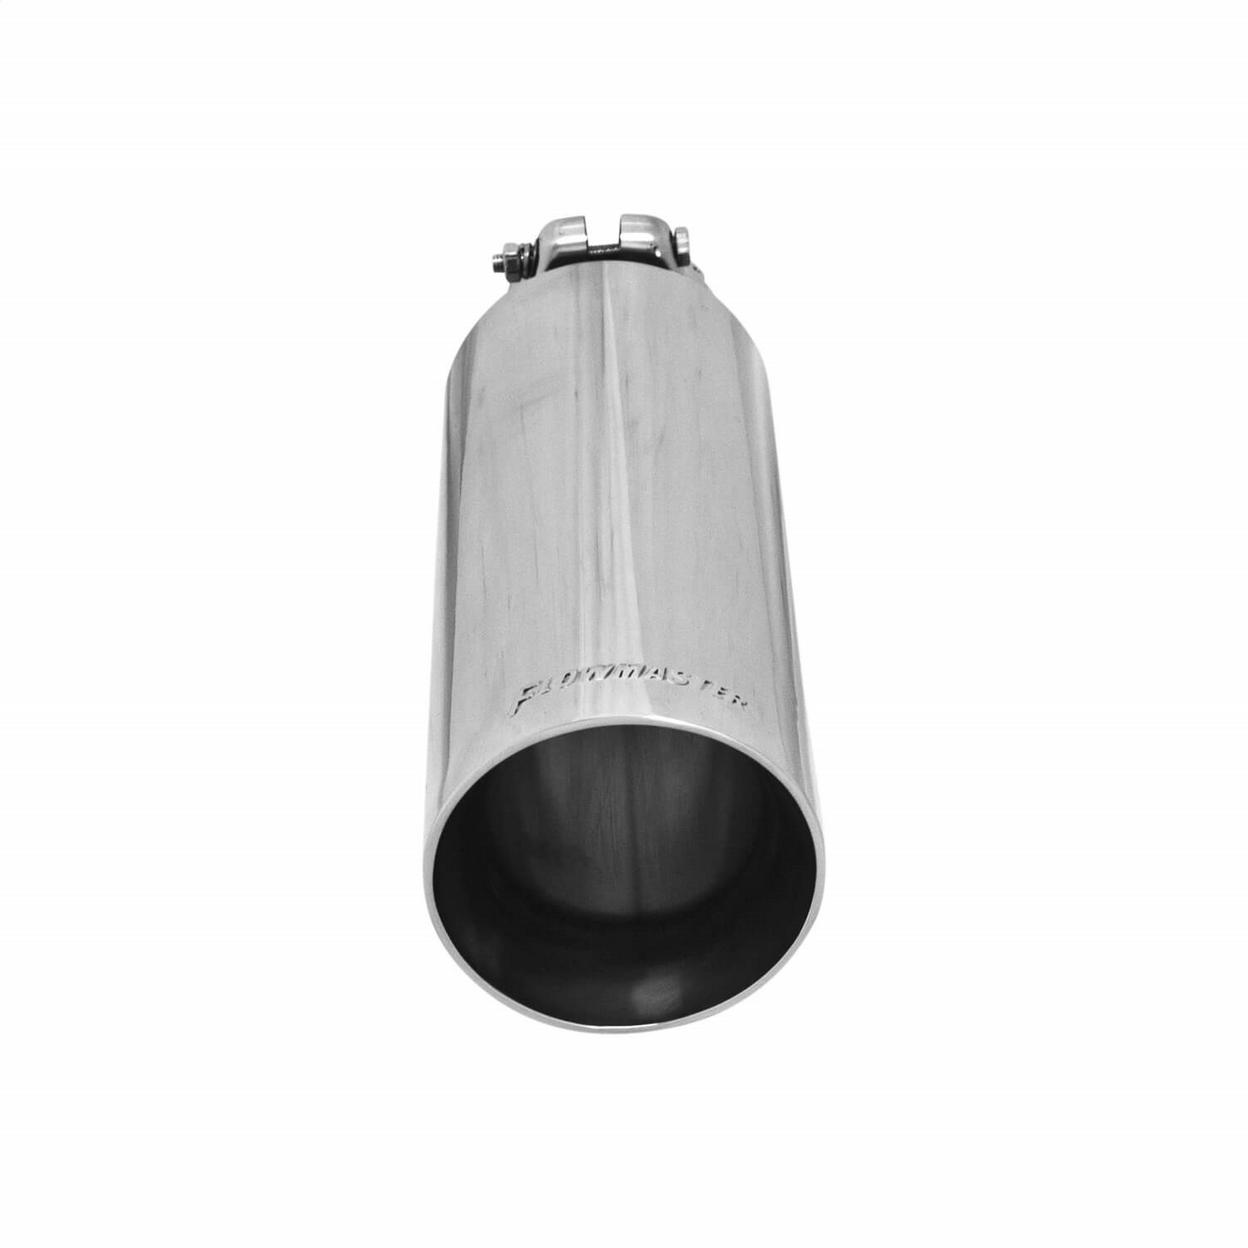 Exhaust Tip - 3.50 in. Angle Cut Polished SS Fits 2.50 in. Tubing - Clamp on